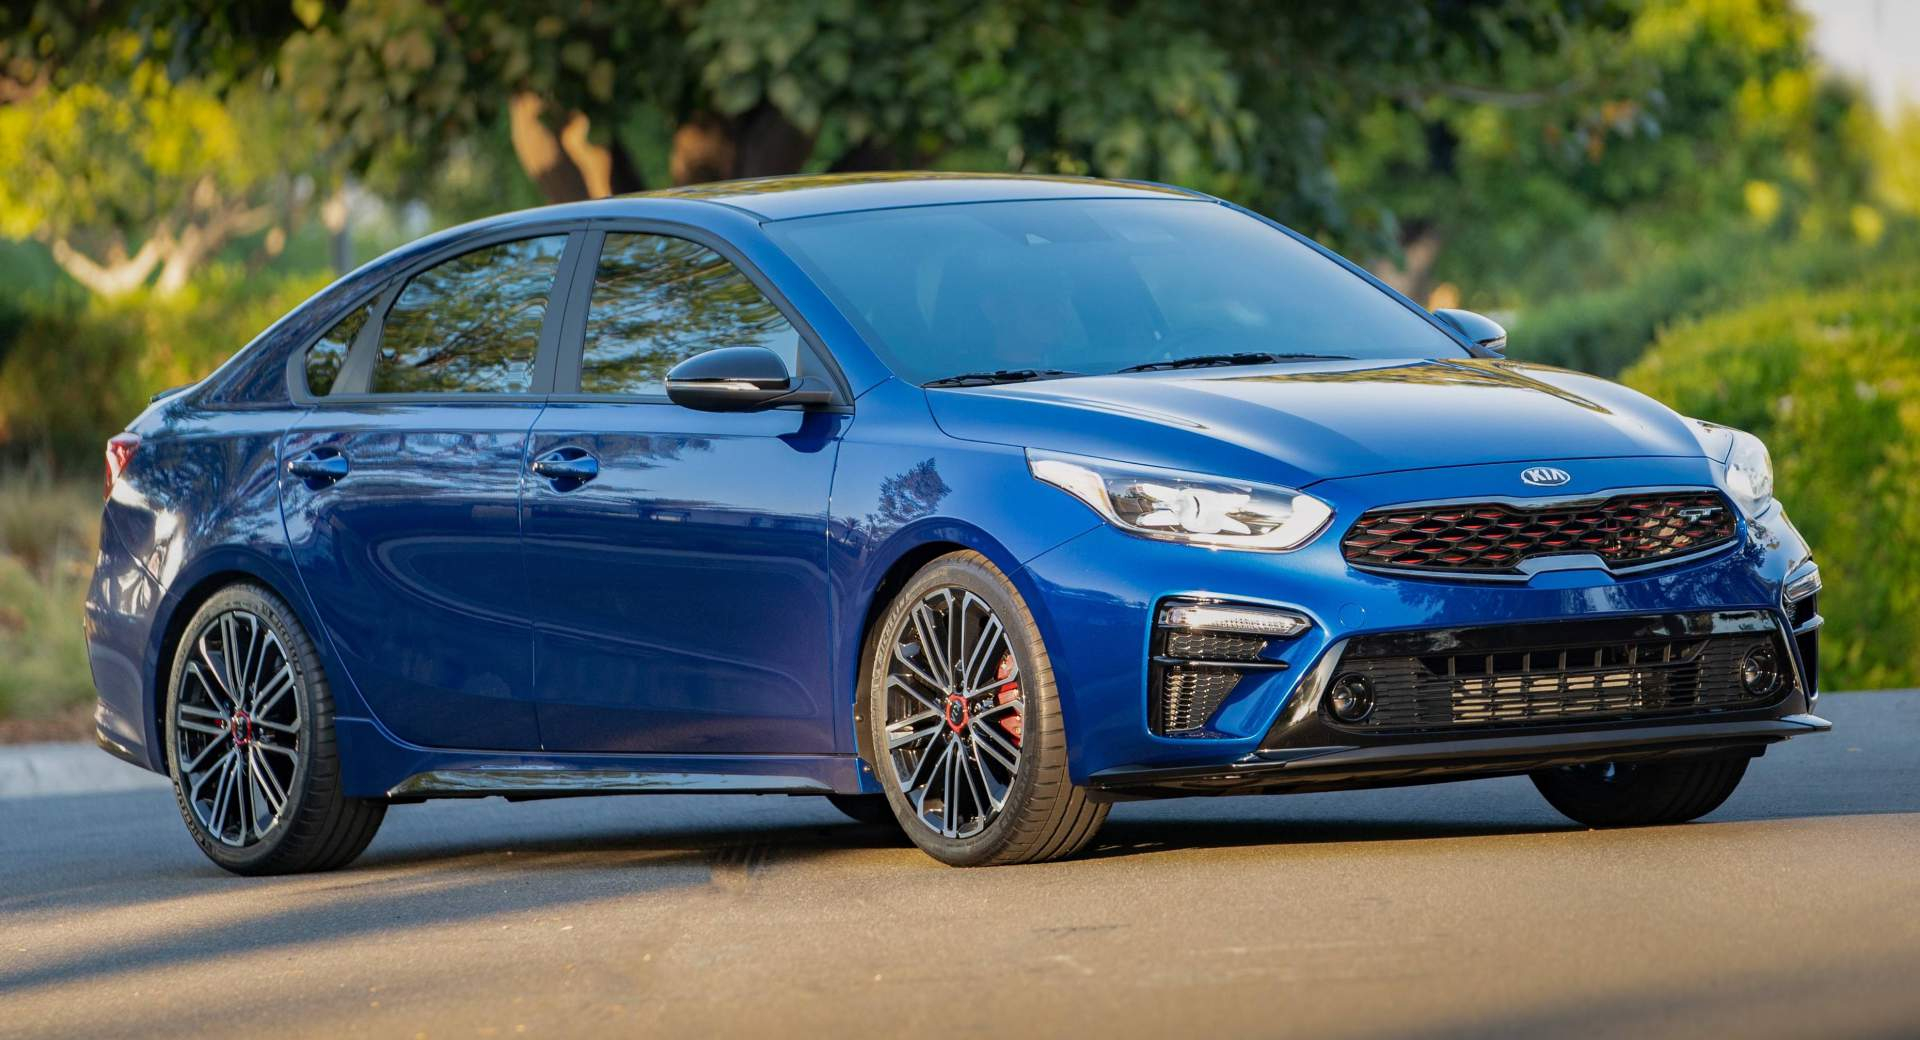 2020 Kia Forte Gt Shows Its Two Flavors At Sema | Carscoops - 2022 Kia Forte Gt Specification, Changes